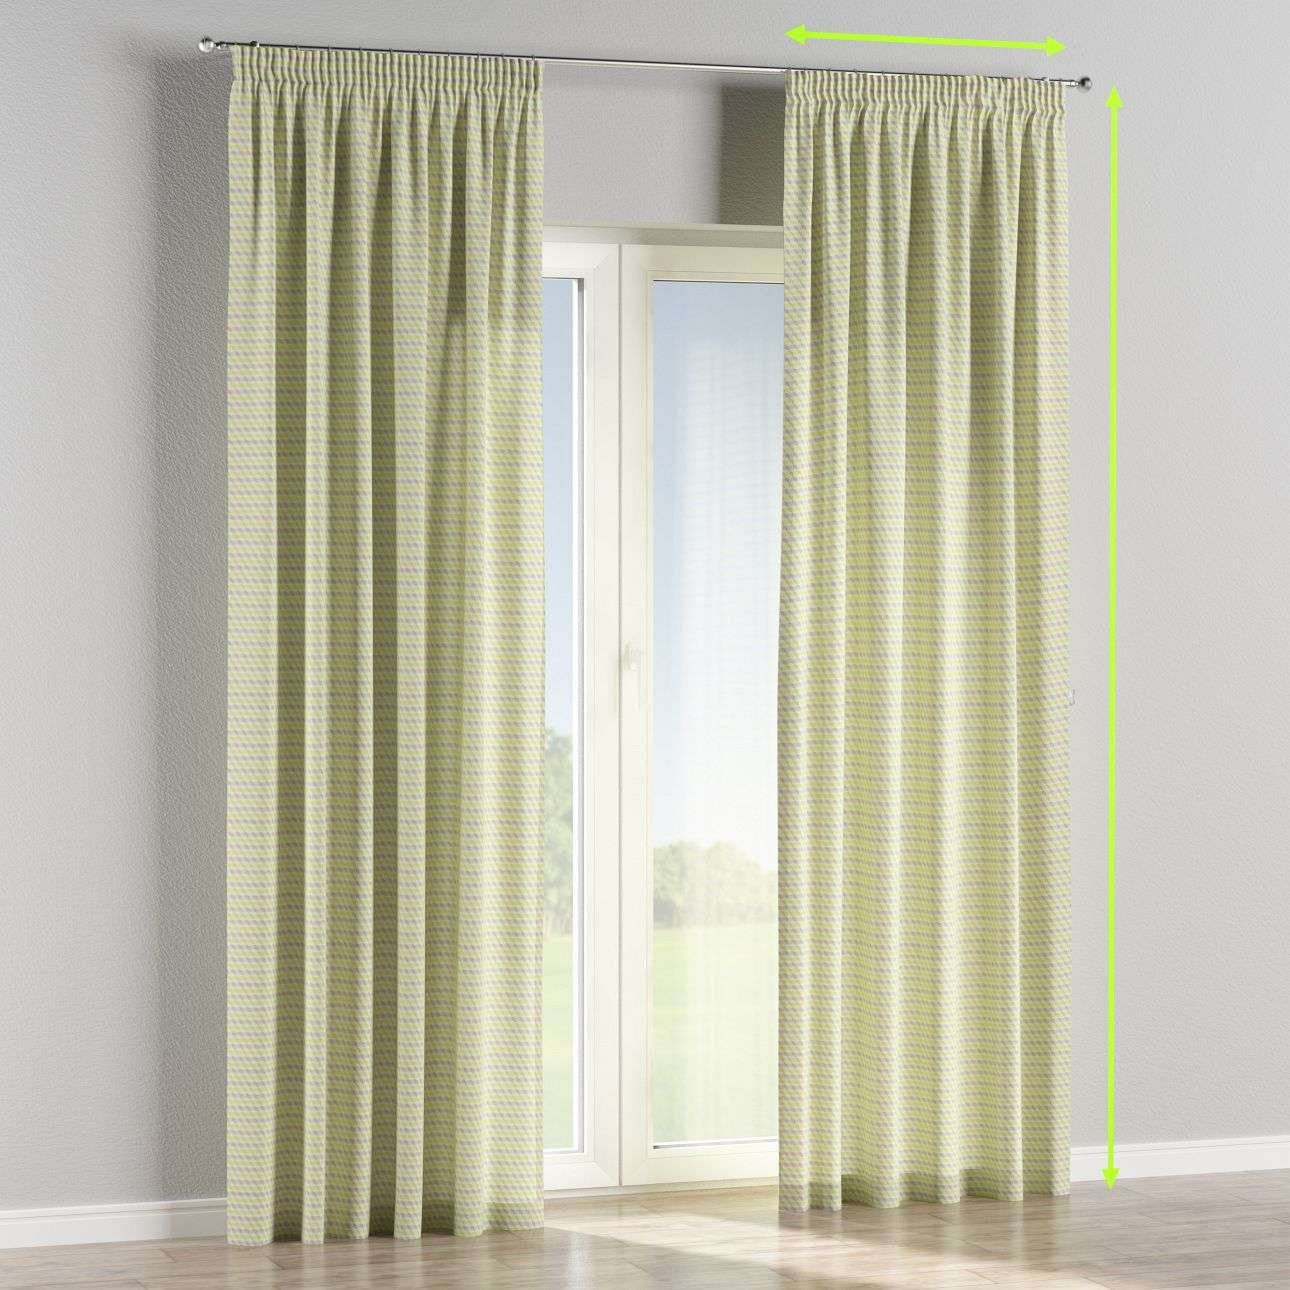 Pencil pleat lined curtains in collection Rustica, fabric: 140-36